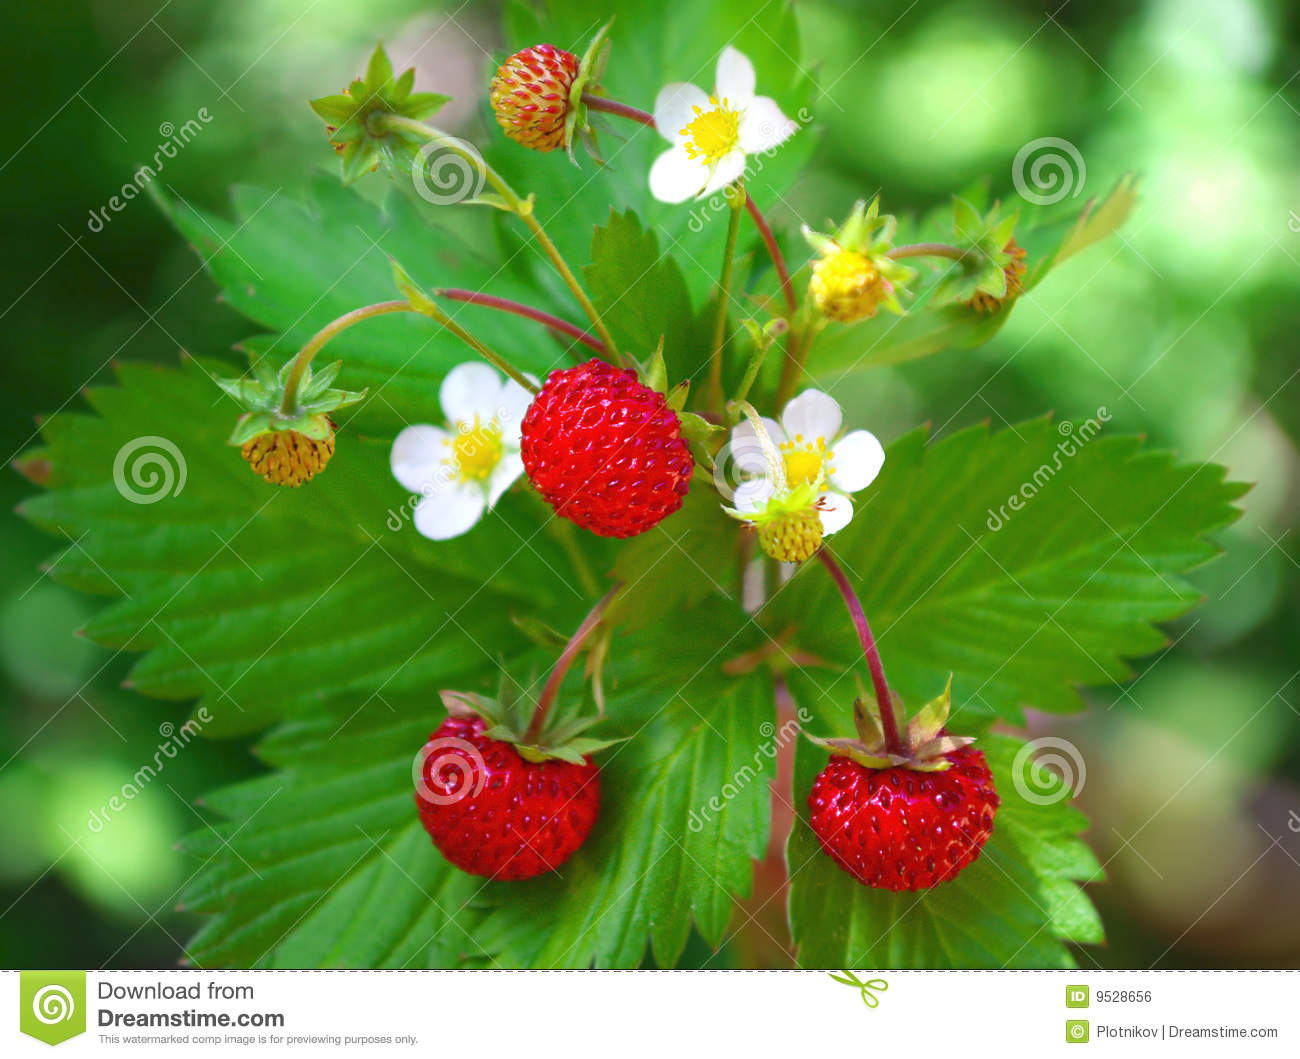 Wild strawberry with berries and flowers